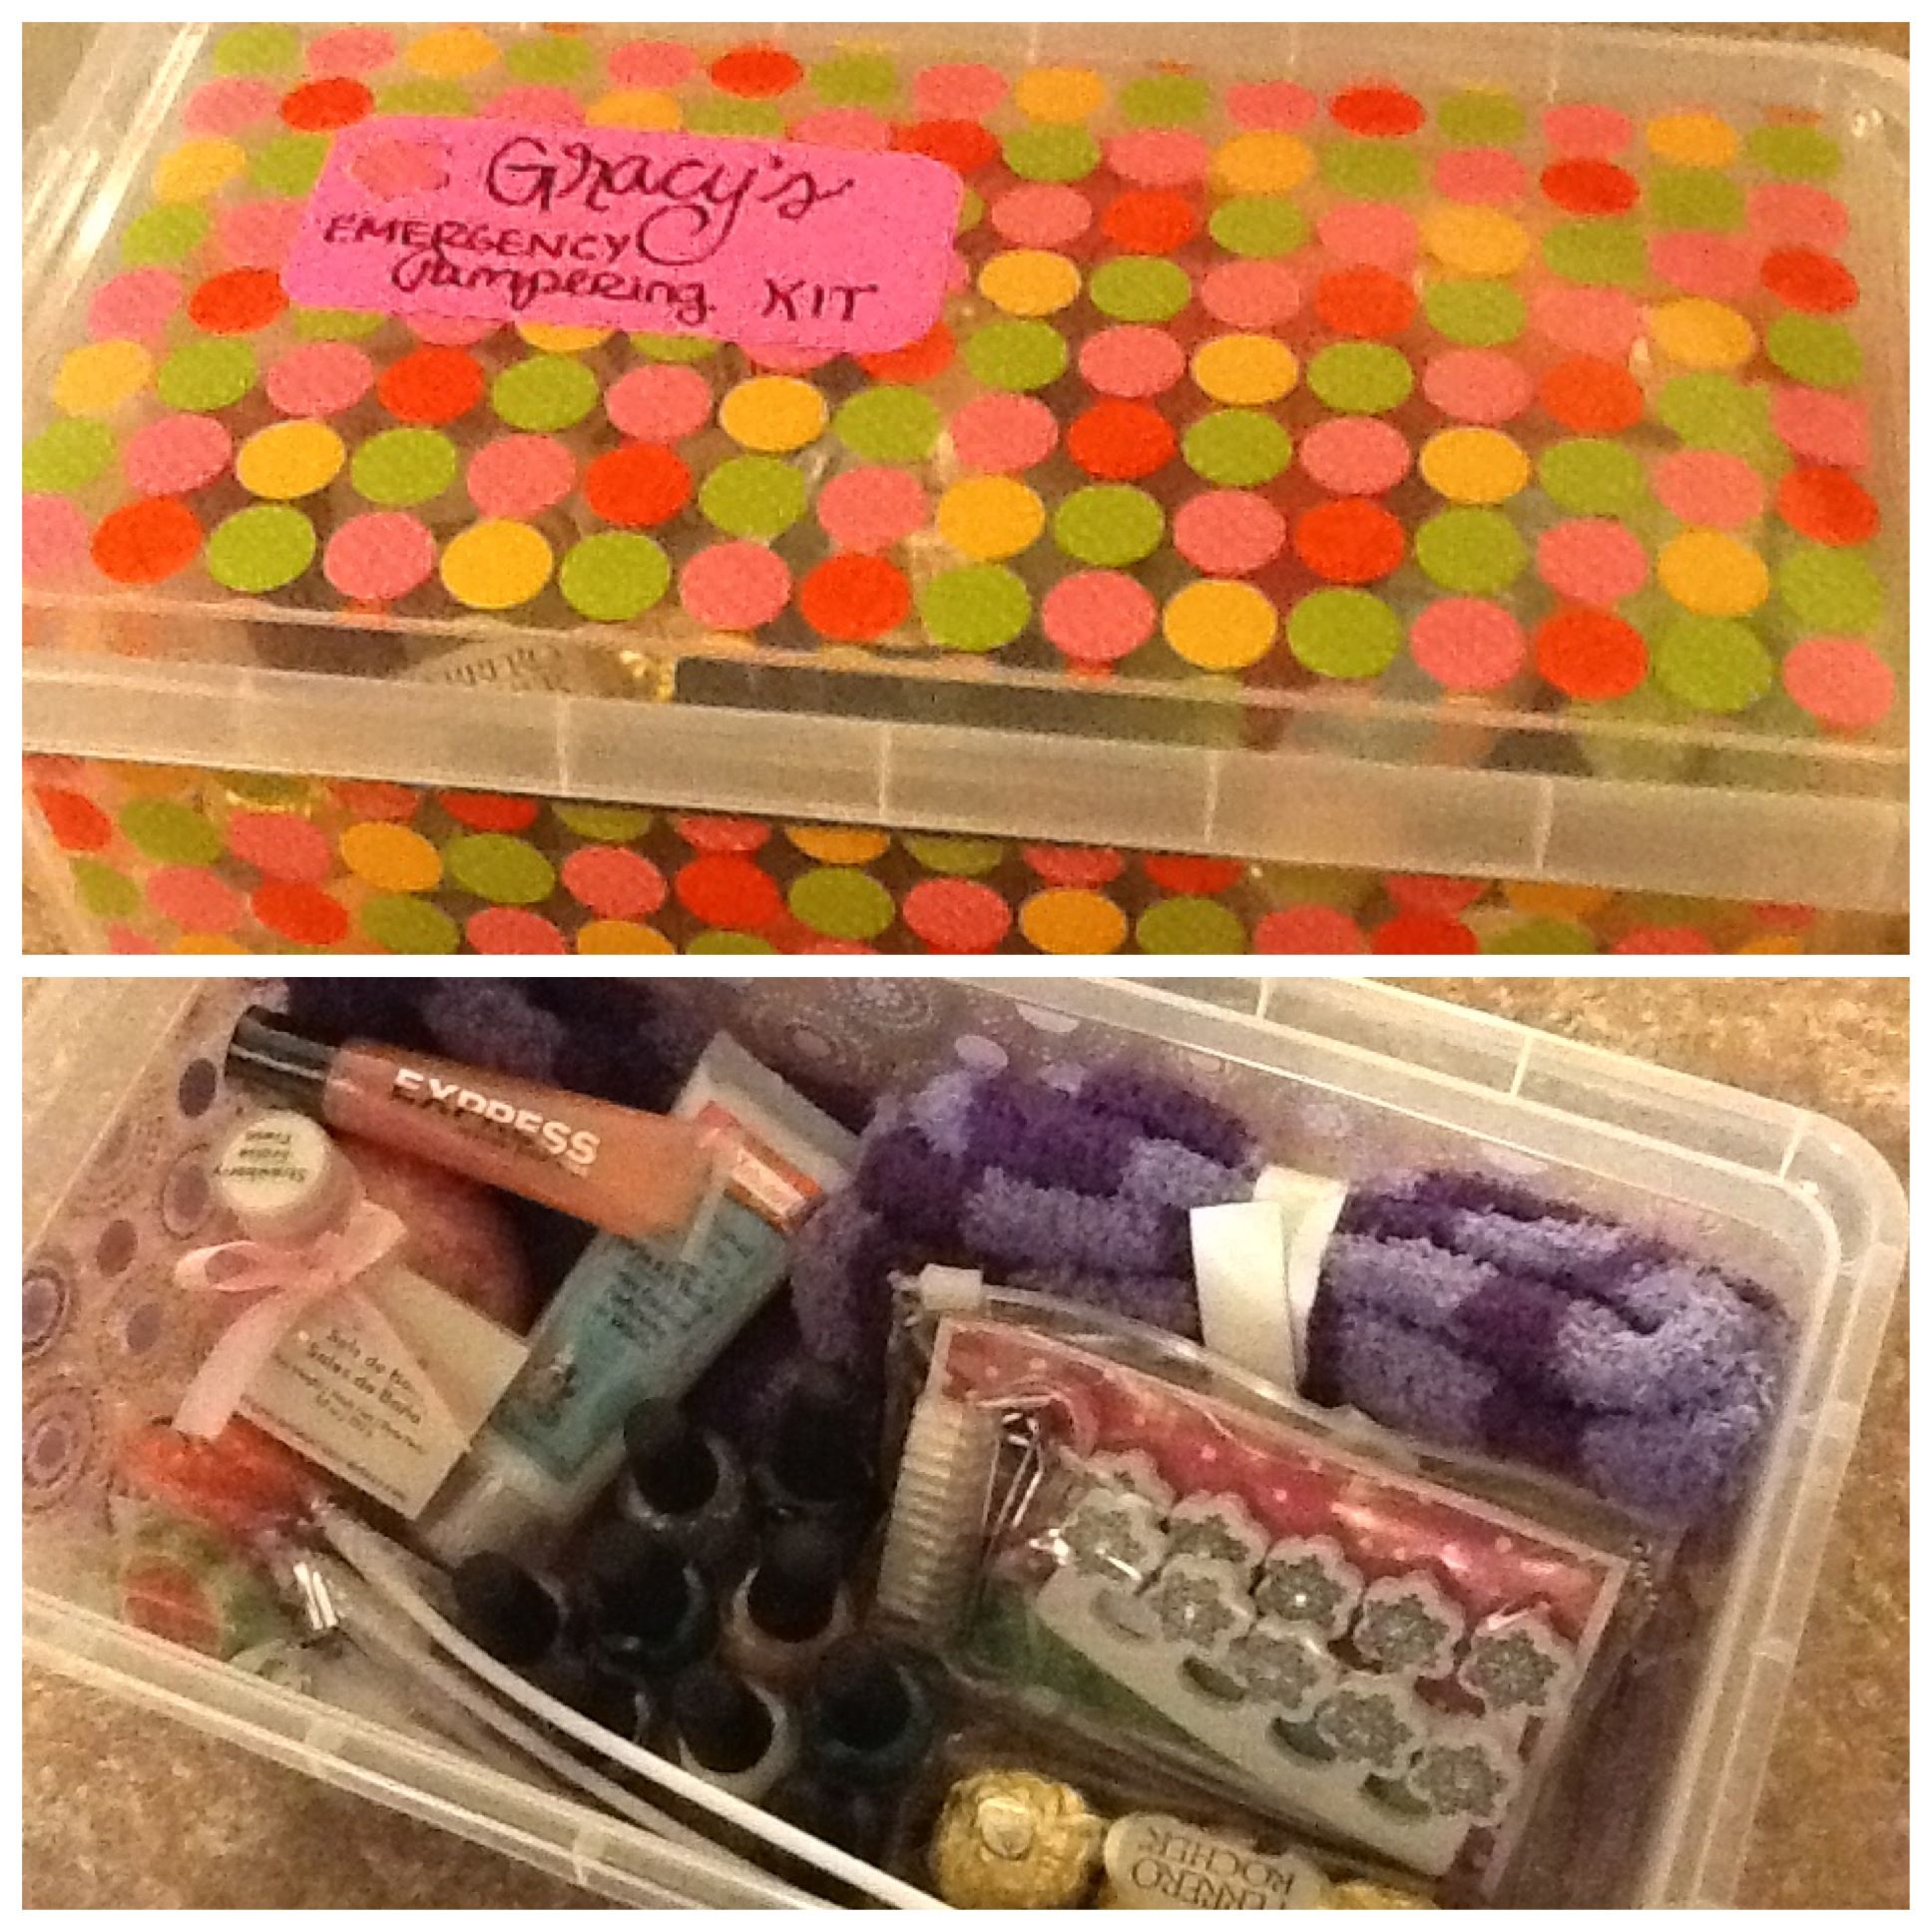 """""""Emergency Pampering Kits"""" Found the cute containers at Michael's craft store. Contents: fuzzy socks, lip gloss, lotion, bath salt, lots of nail polish, nail clippers, brush, other nail accessories, and of course sweets and chocolate! Can't wait to give these to the girls for Christmas."""